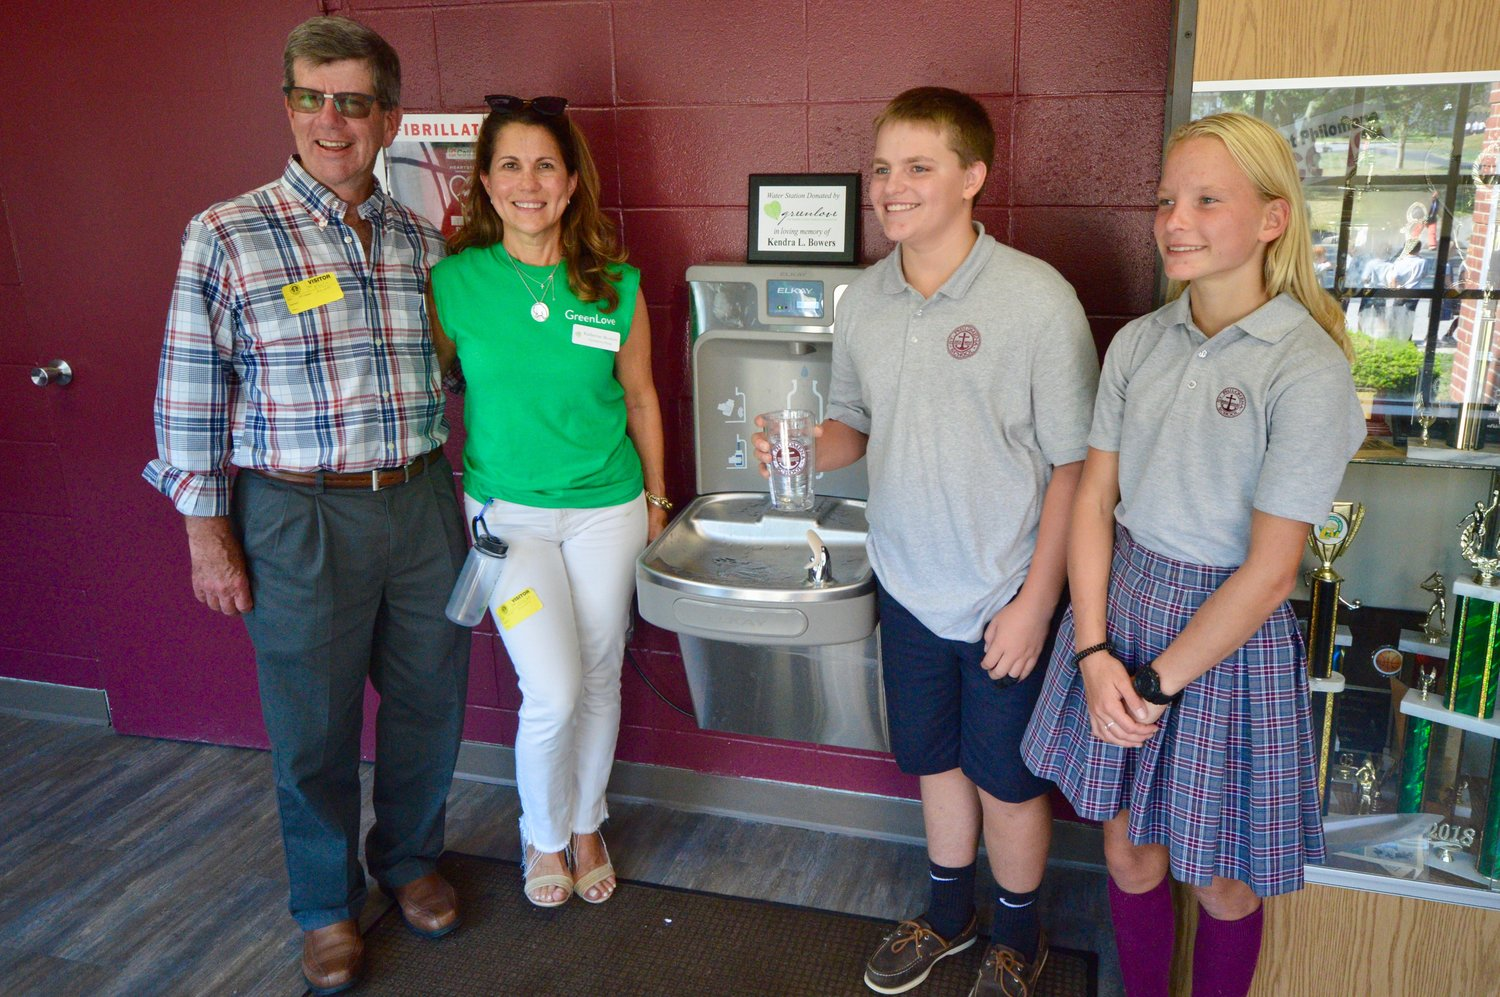 Michael and Katherine Bowers of the Greenlove Foundation pose with the new filling station along with St. Philomena School eighth-graders Chris DeSantis and Julia Pelszarski.